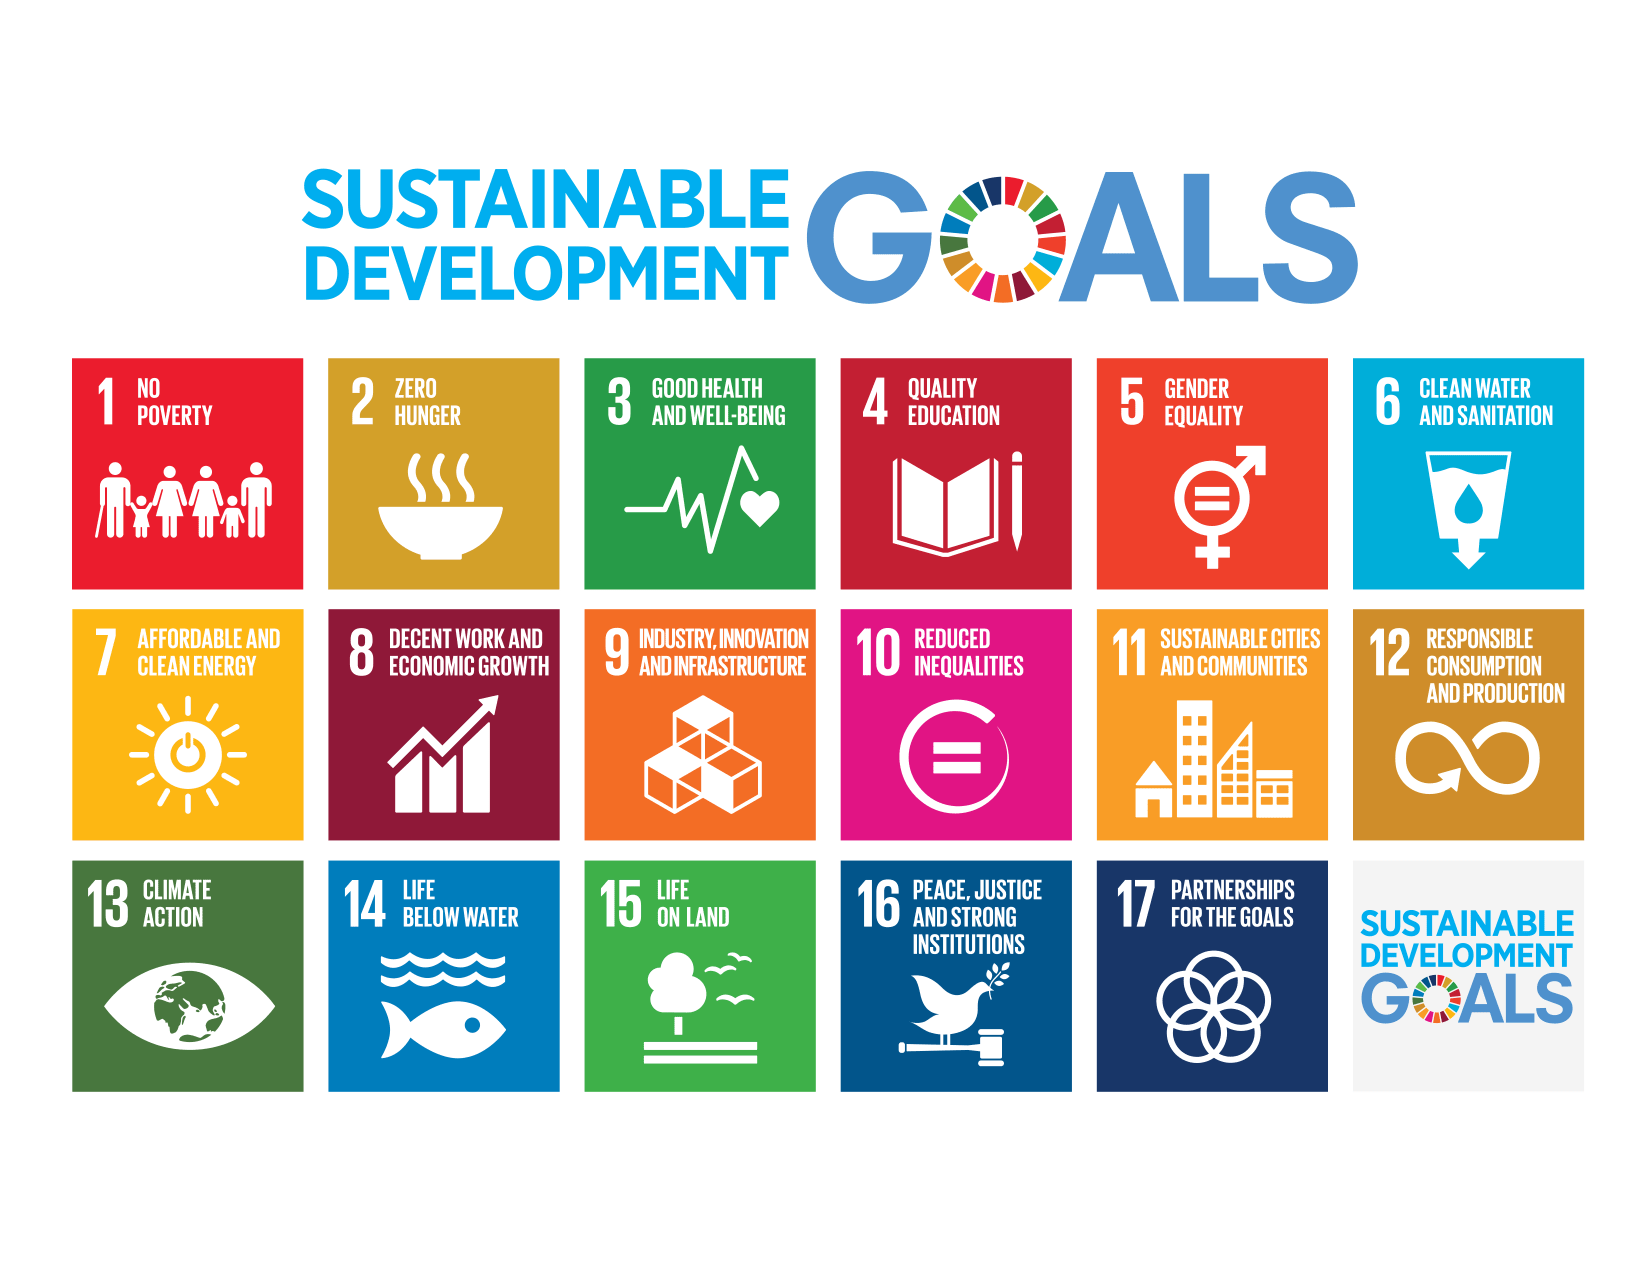 Source: UN website http://www.un.org/sustainable development/news/communications-material/